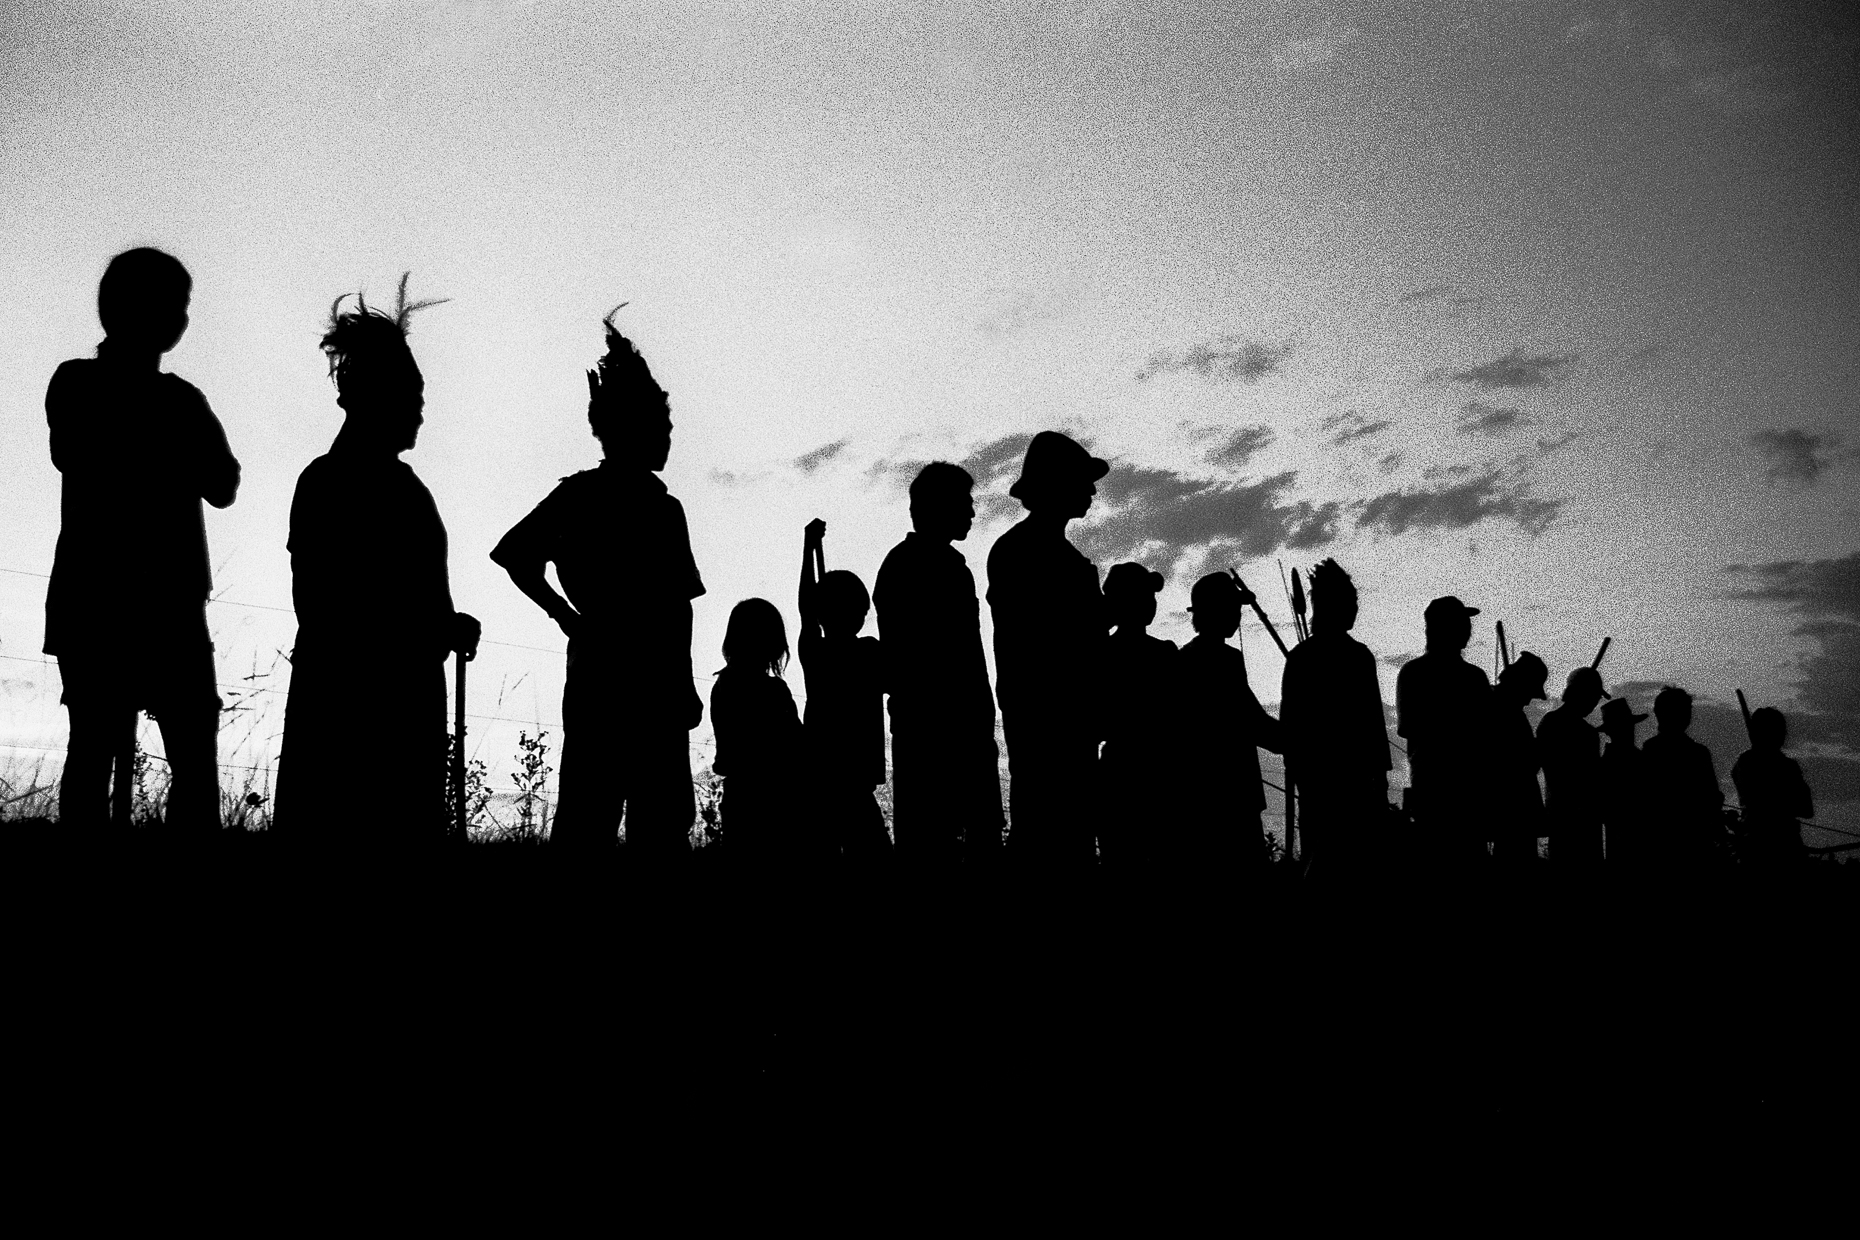 Members of the Guarani-Kaiowa tribe prepare to re-occupy their land